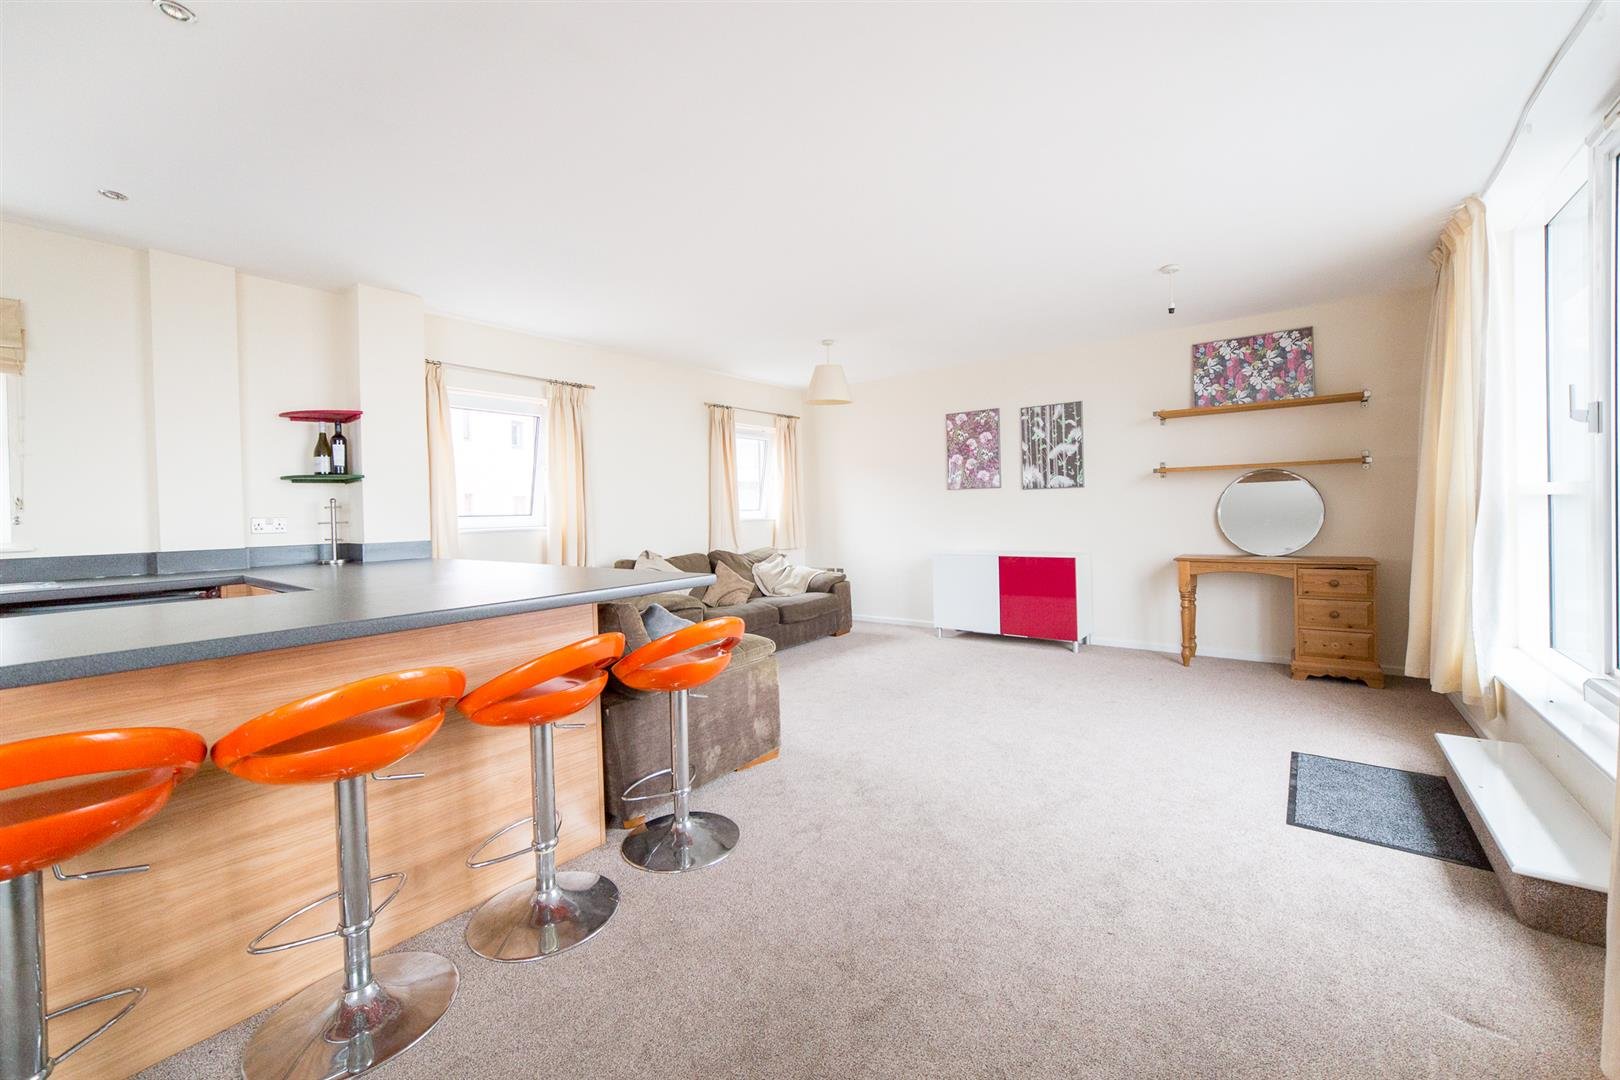 4 bed apartment to rent in Newcastle Upon Tyne, NE1 2JR, NE1